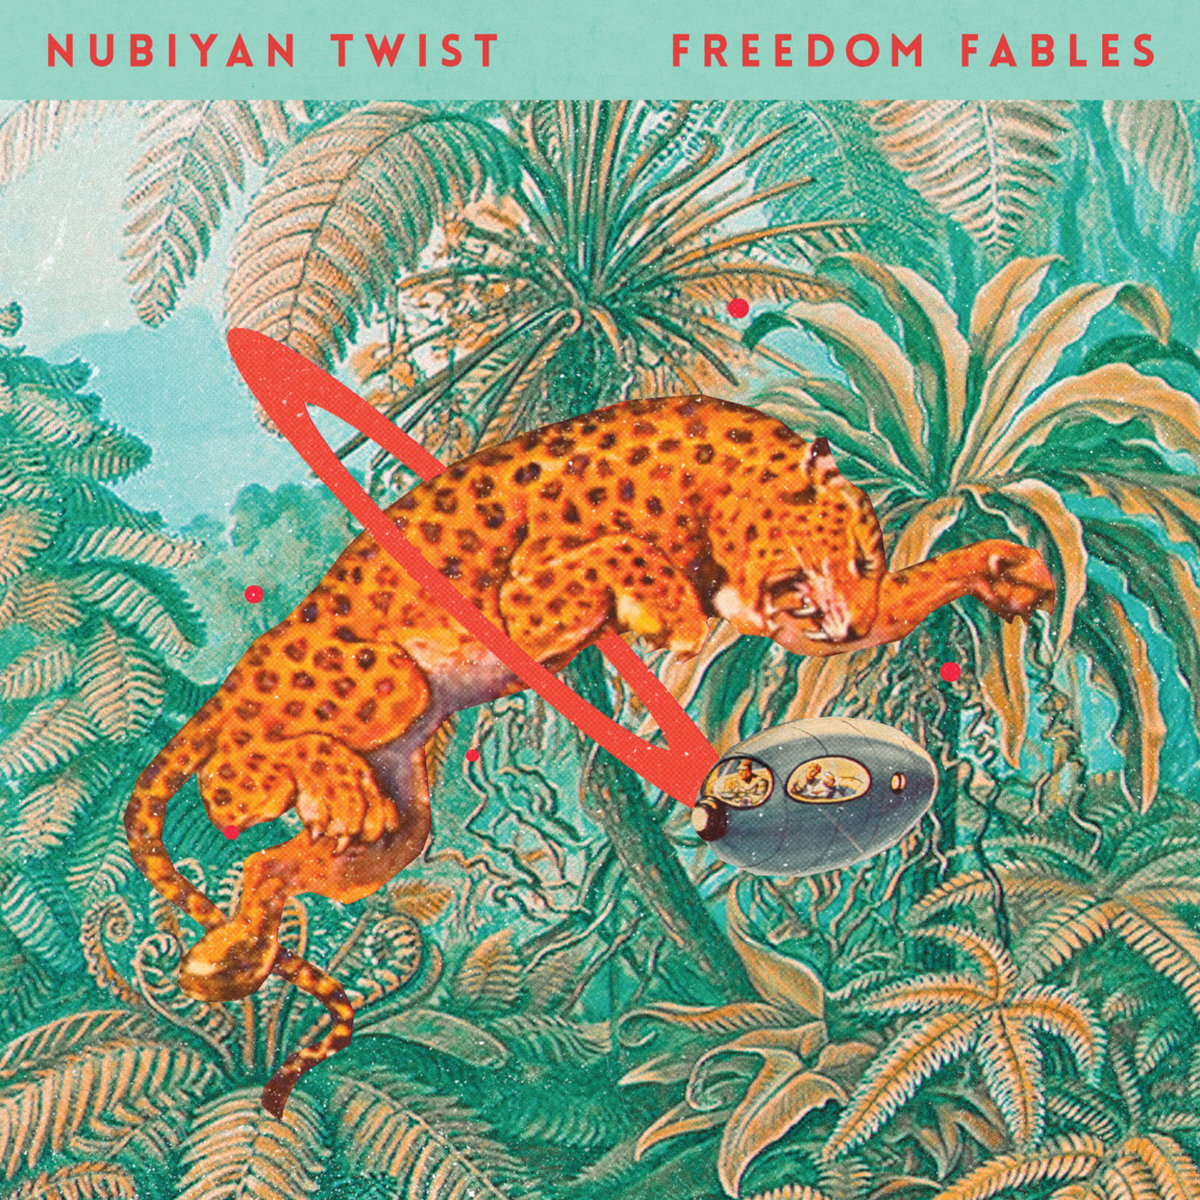 RECORD OF THE WEEK//Nubiyan Twist – Freedom Fables